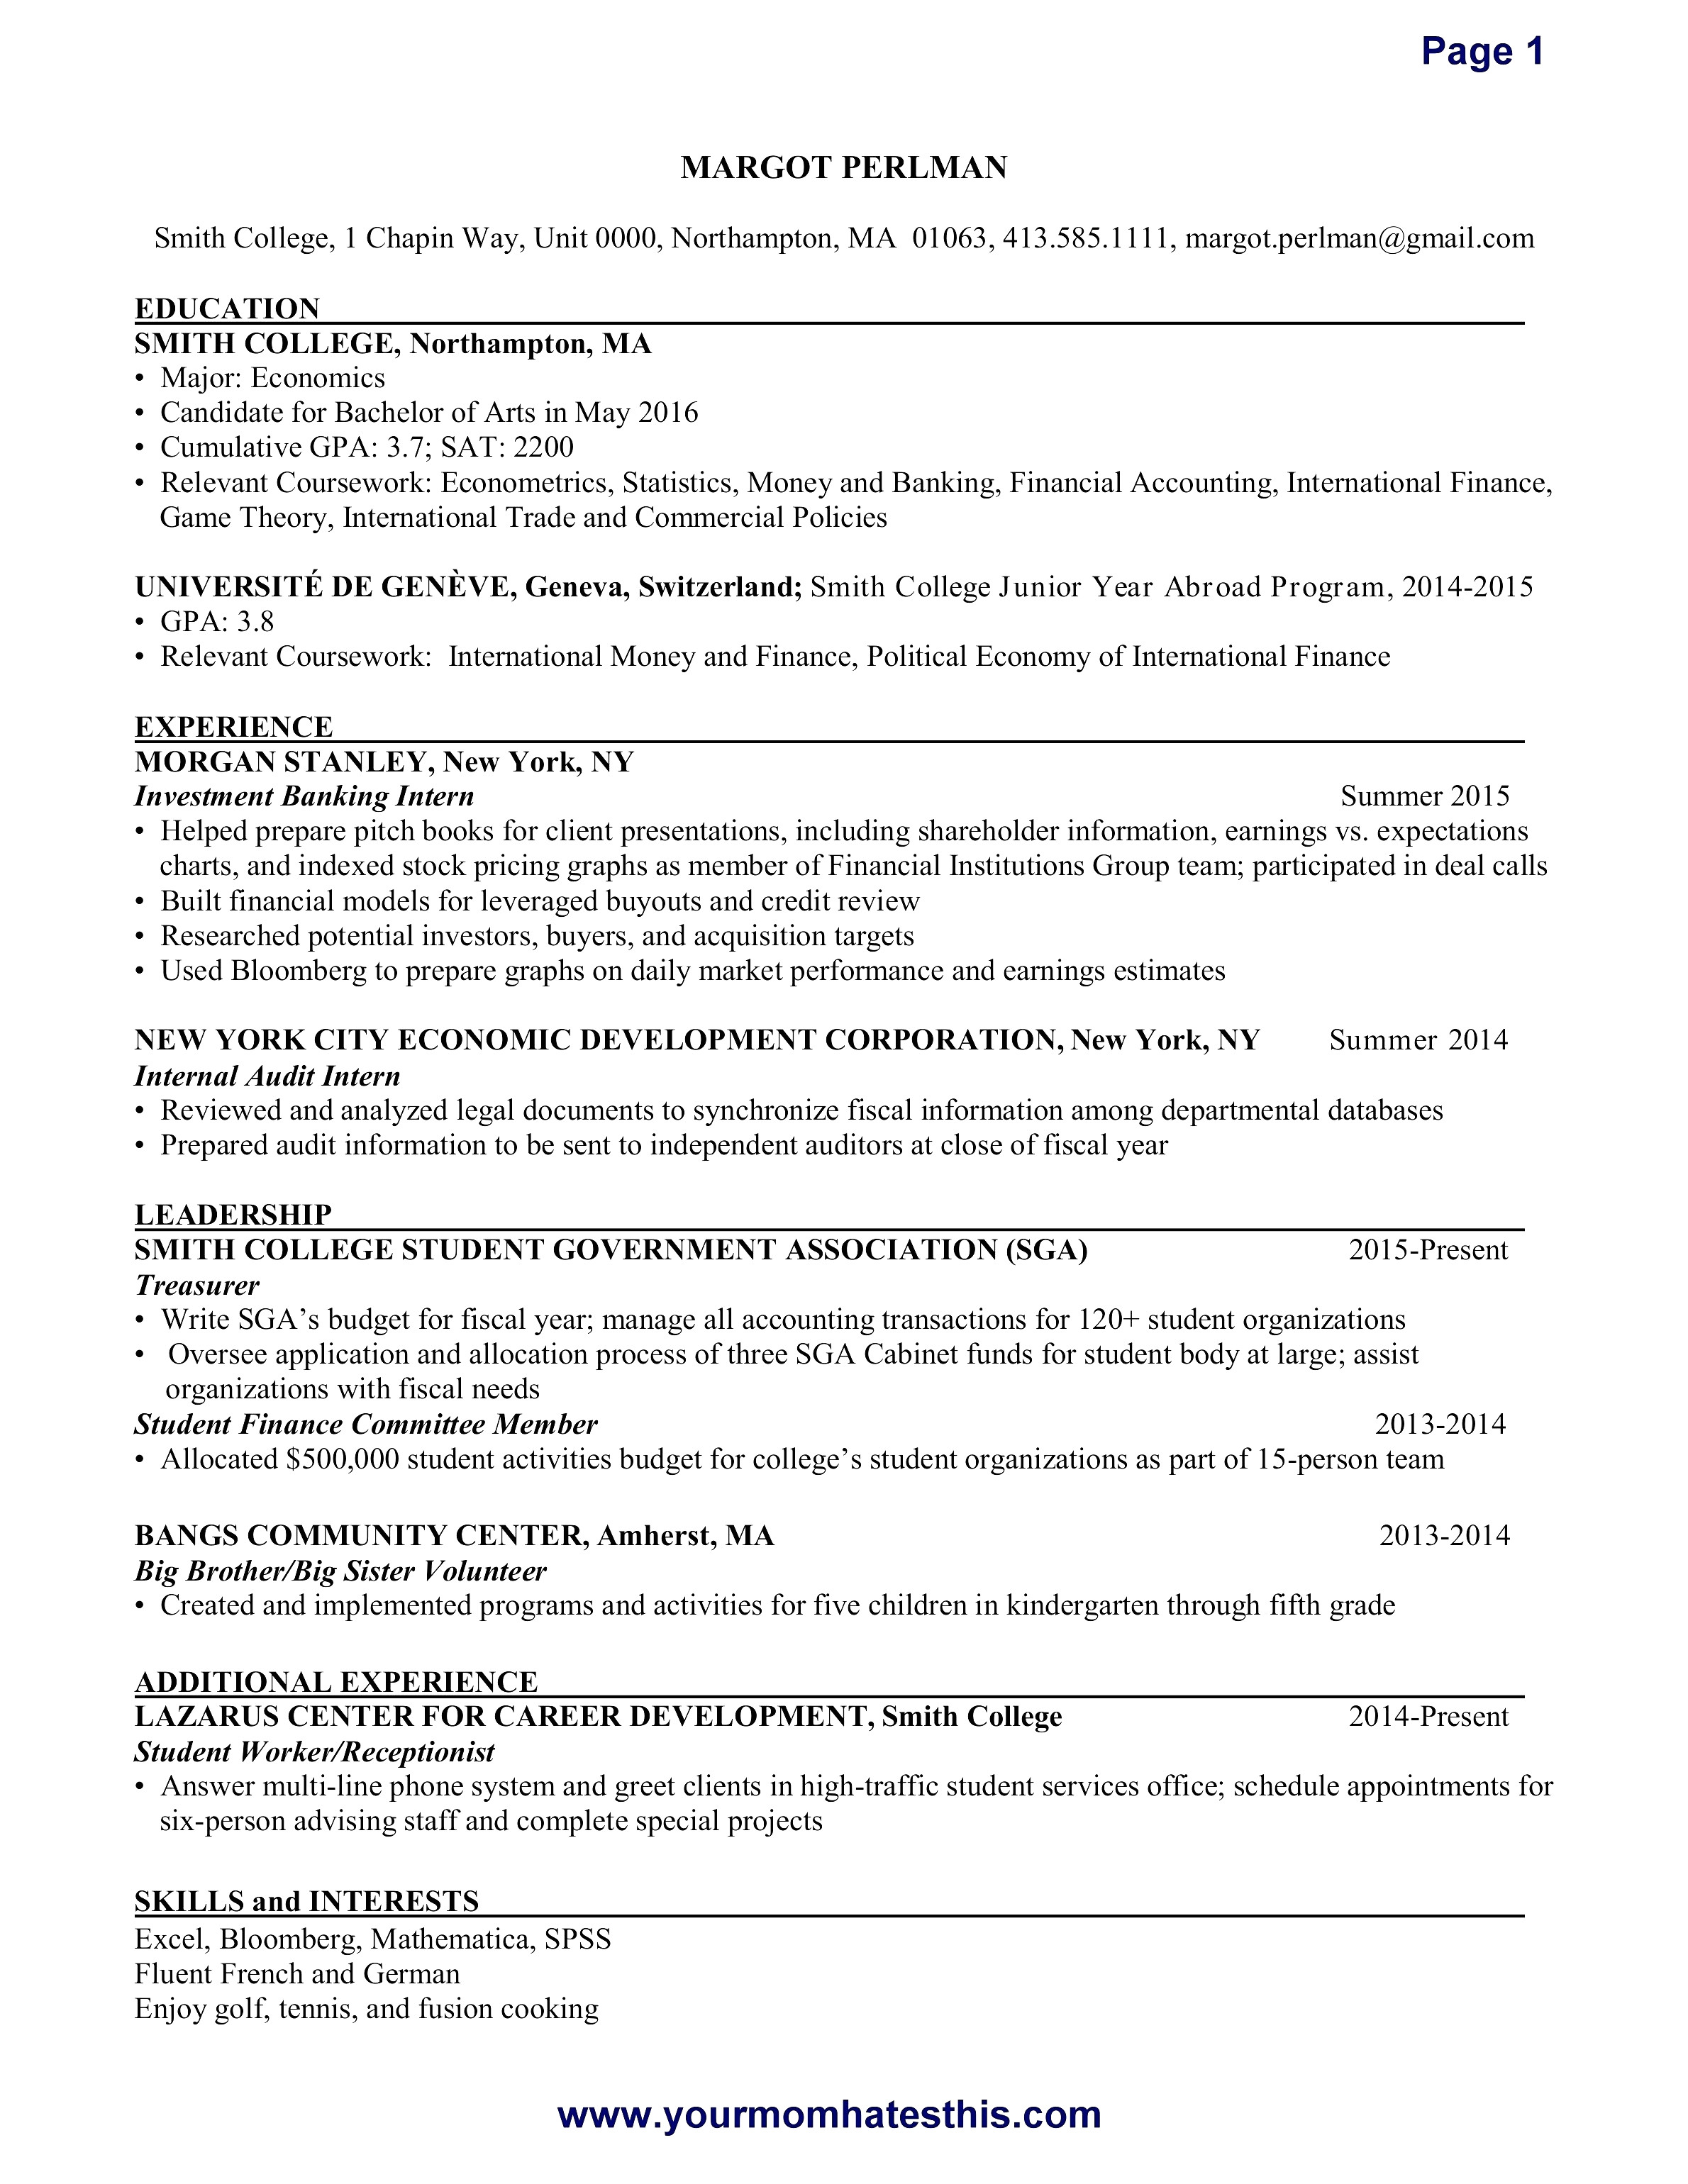 Resume for Receptionist with No Experience - 61 Concepts Free Sample Resumes